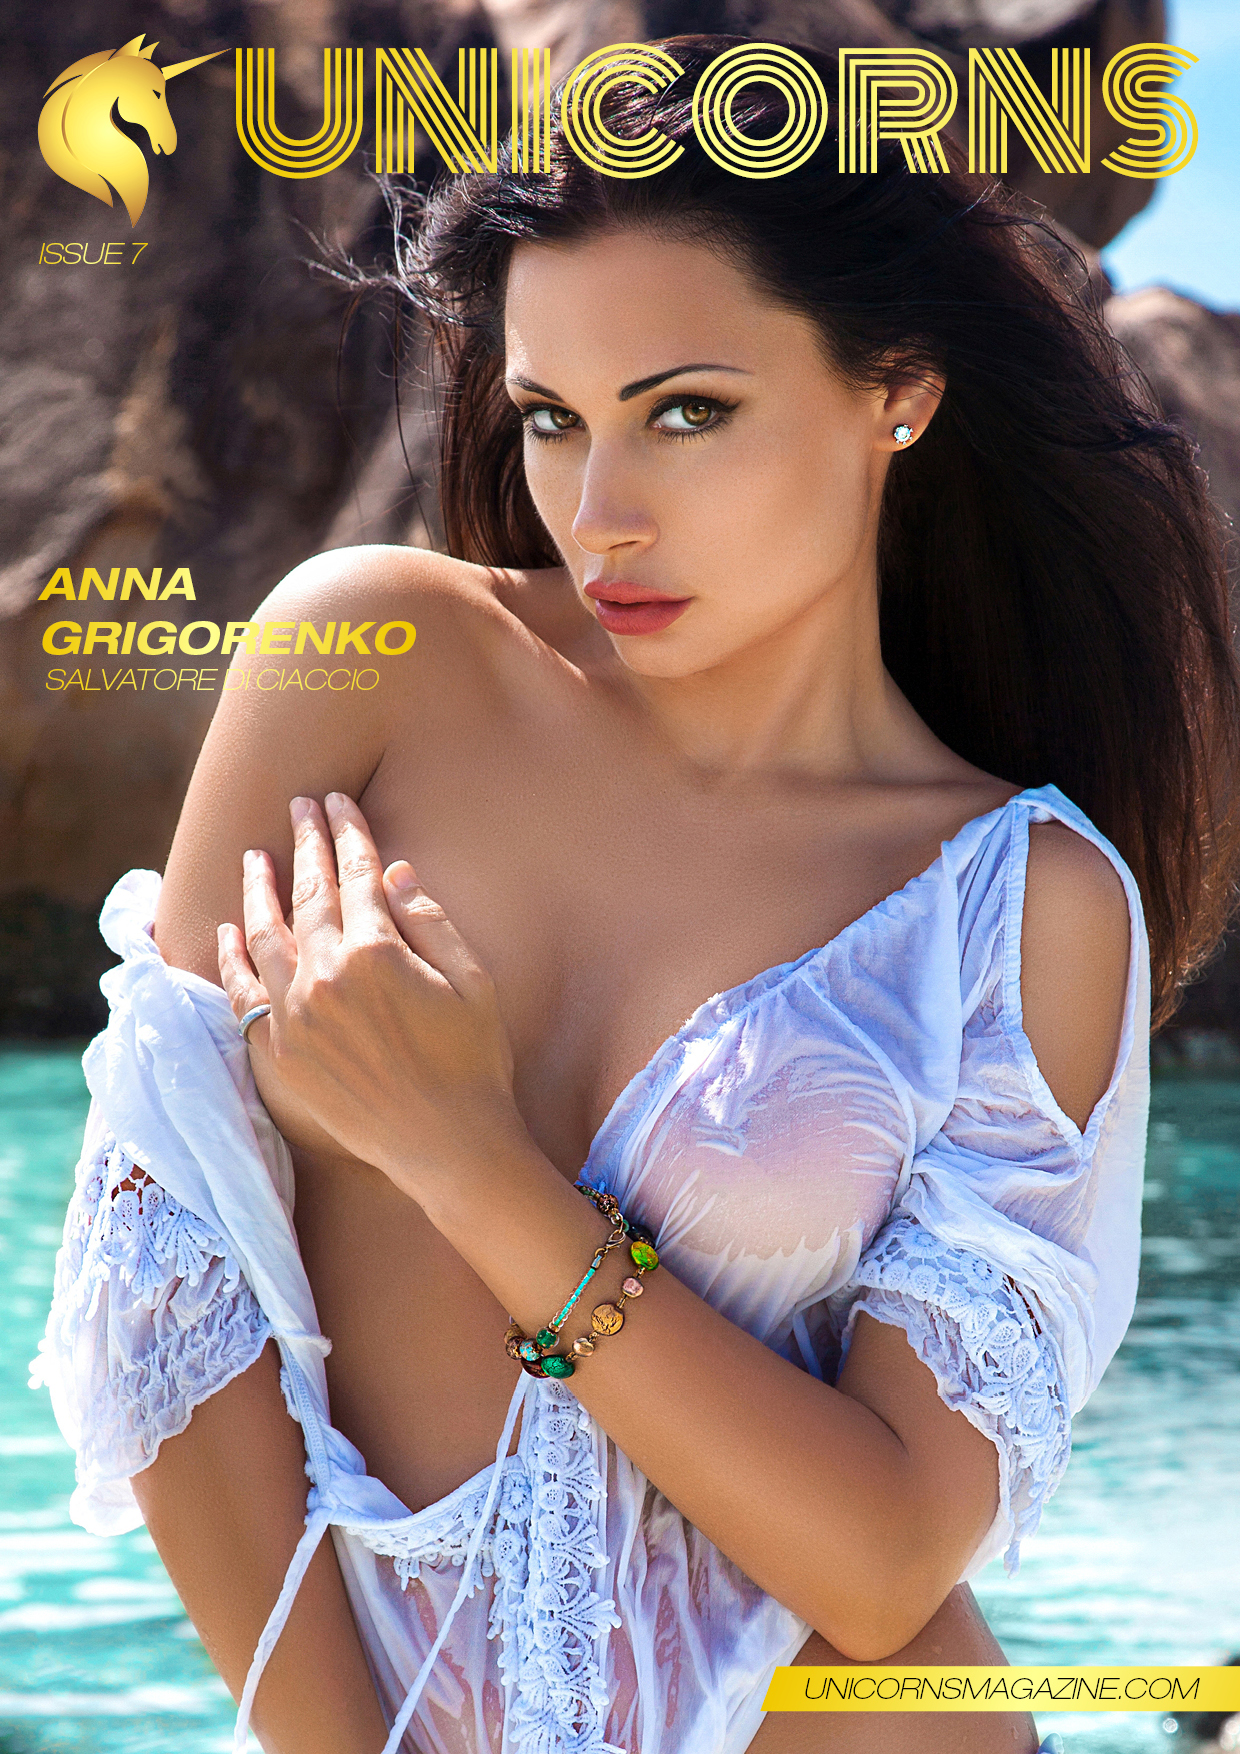 Unicorns Magazine – May 2019 – Anna Grigorenko